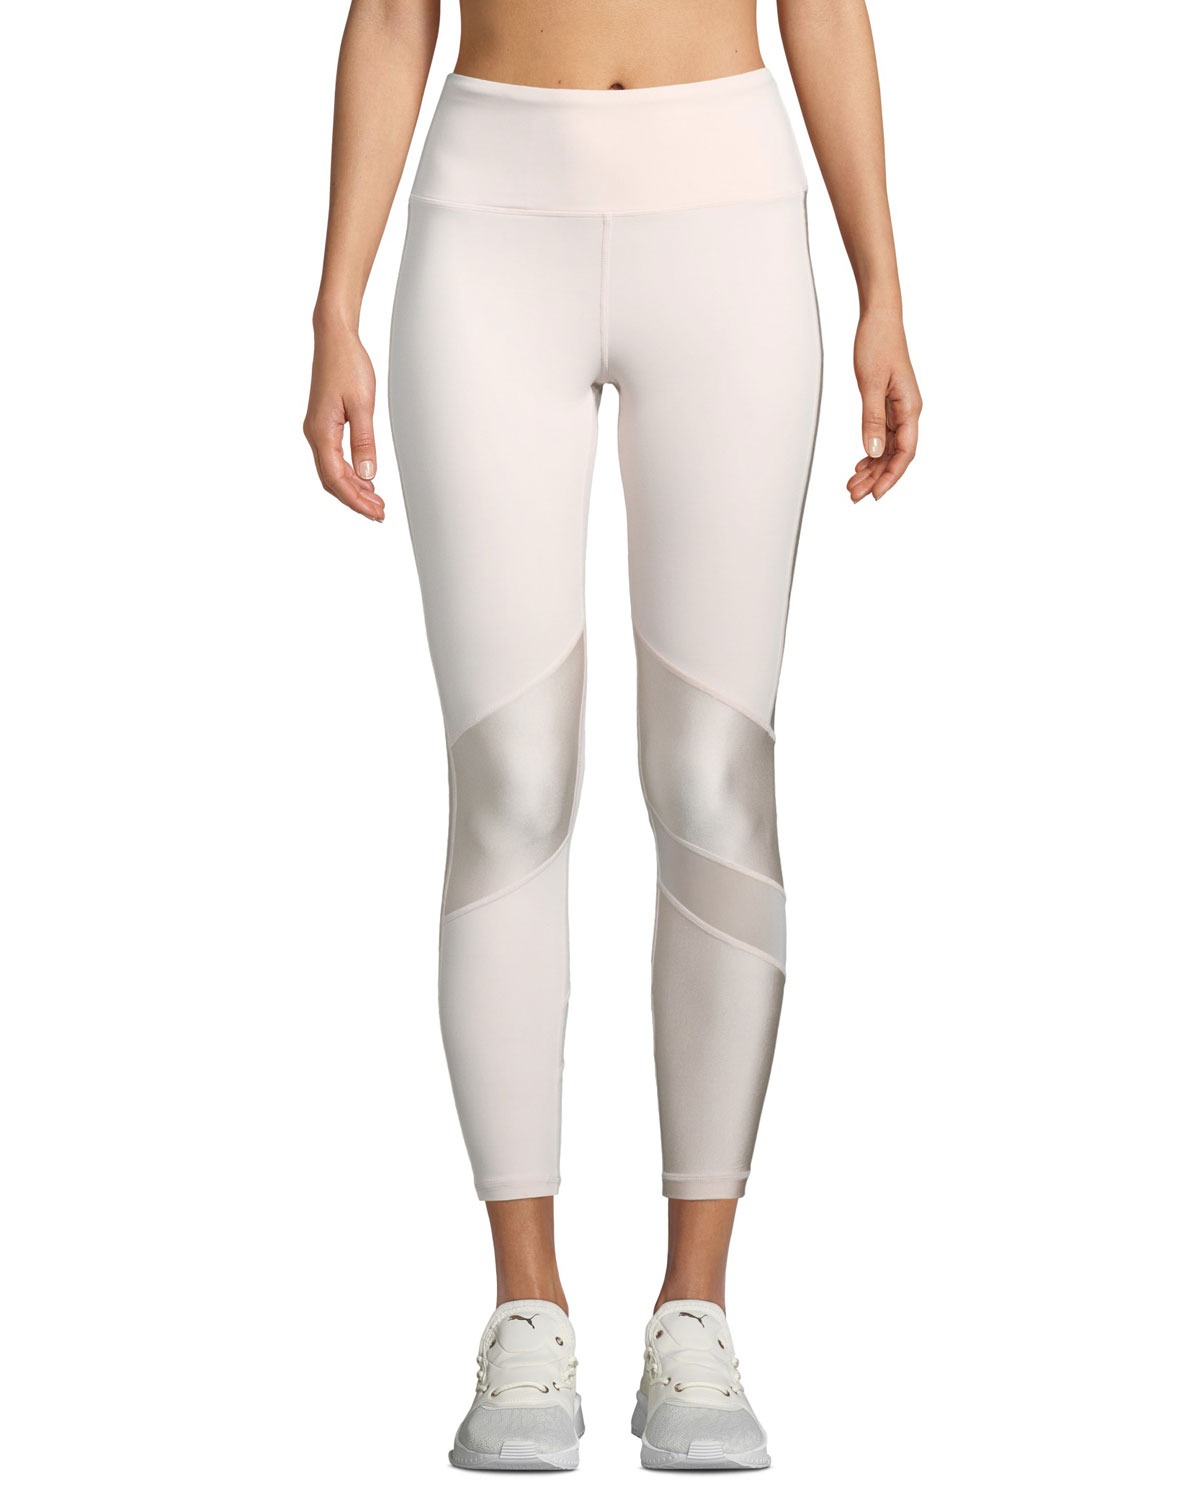 ALALA Love High-Waist Paneled Performance Tights in Light Pink